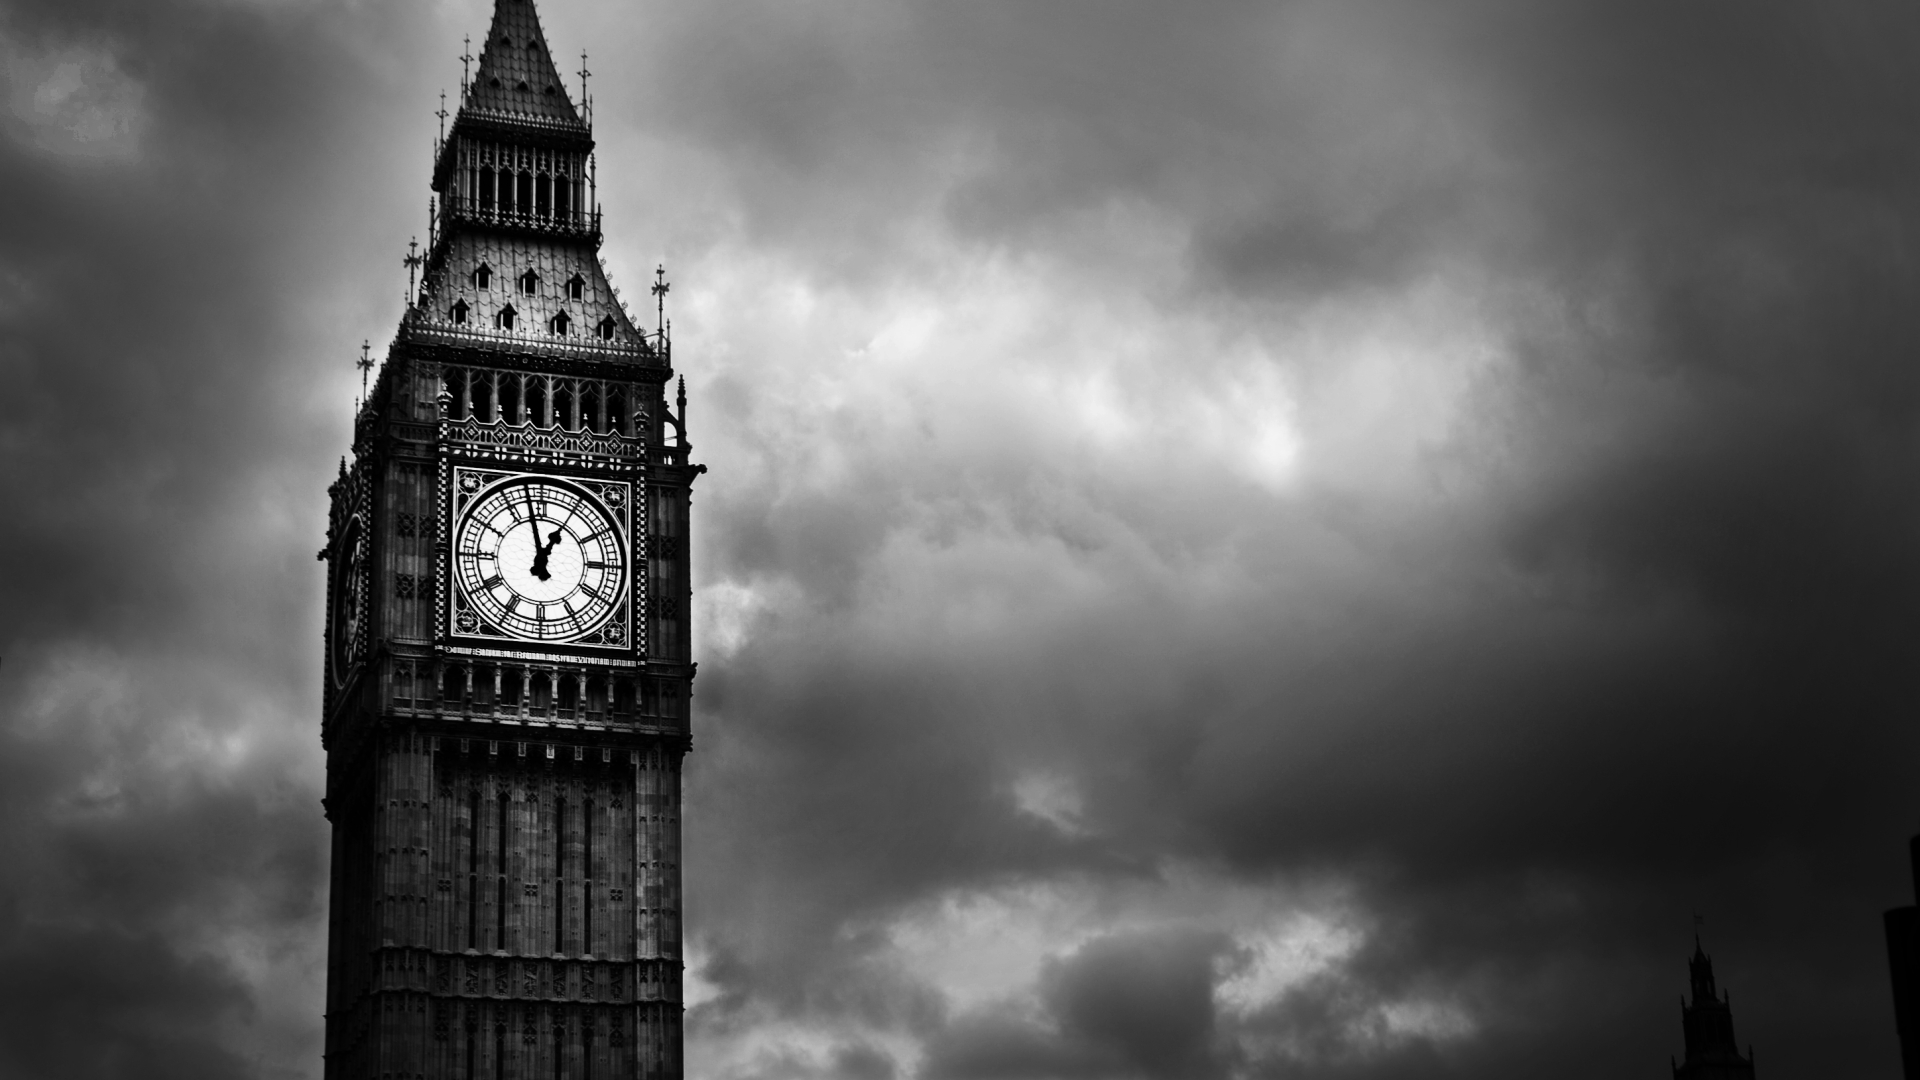 big-ben-tags-london-clock-tower-clouds-bw-image-resolution-x-800238